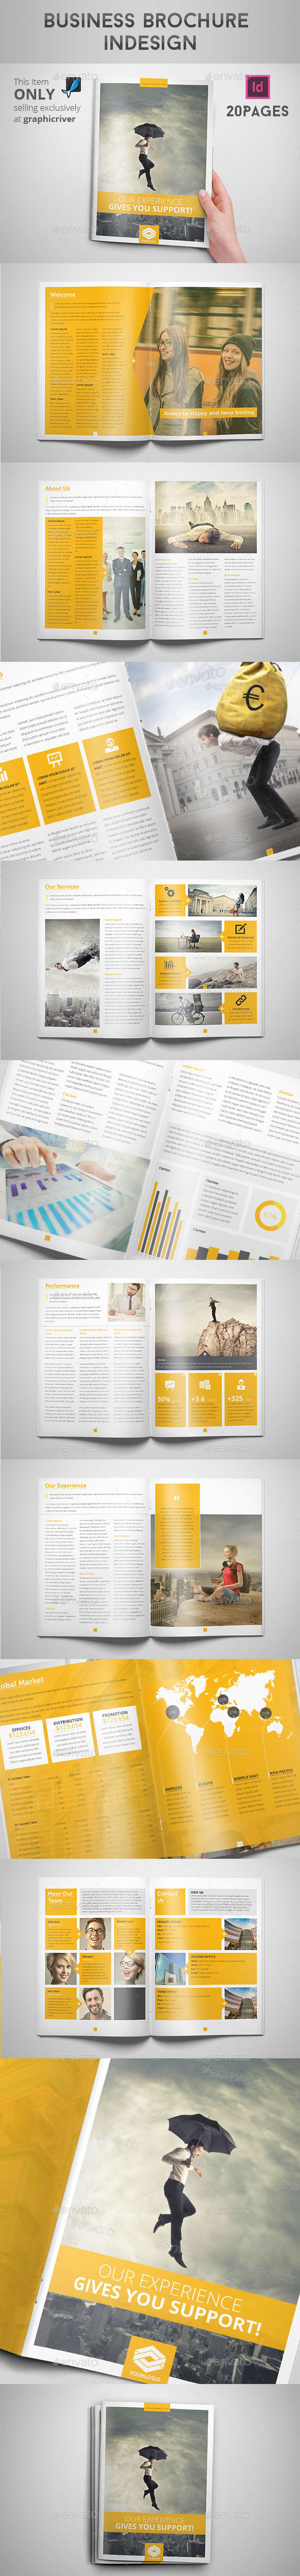 Business Brochure Indesign